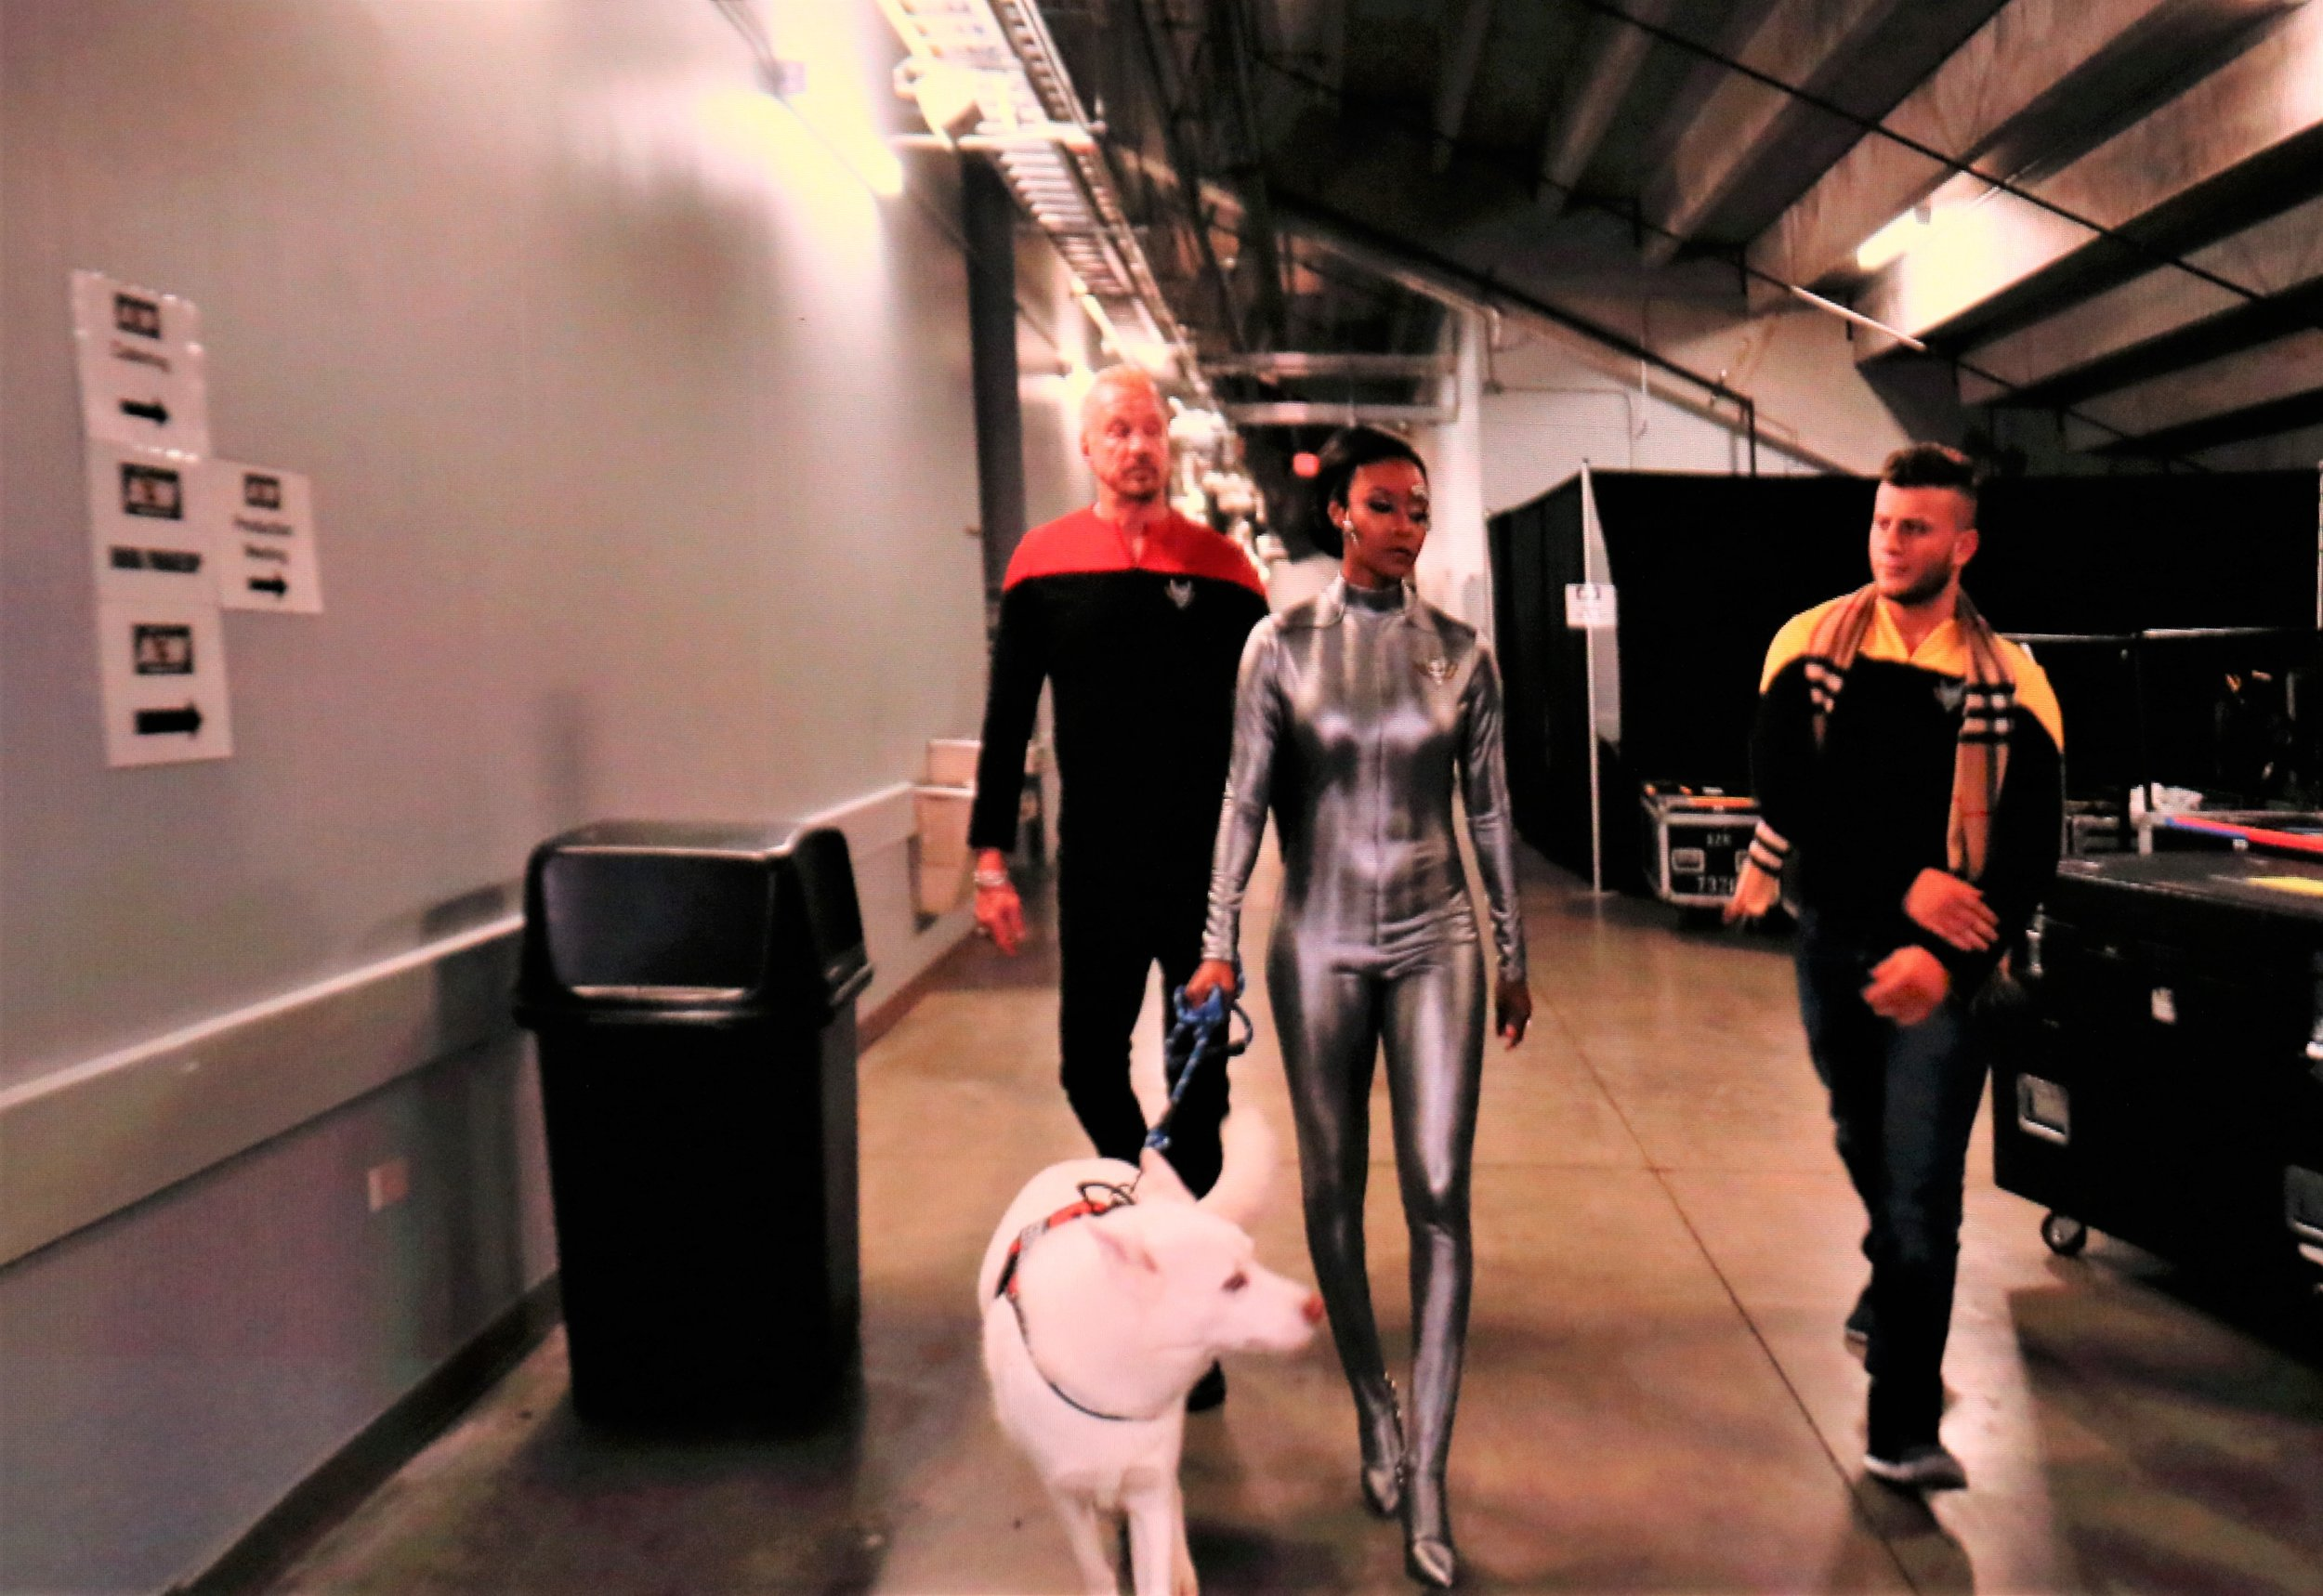 Diamond Dallas Page, Brandi Rhodes, MJF and Pharaoh as part of Cody's Star Trek-themed entrance.